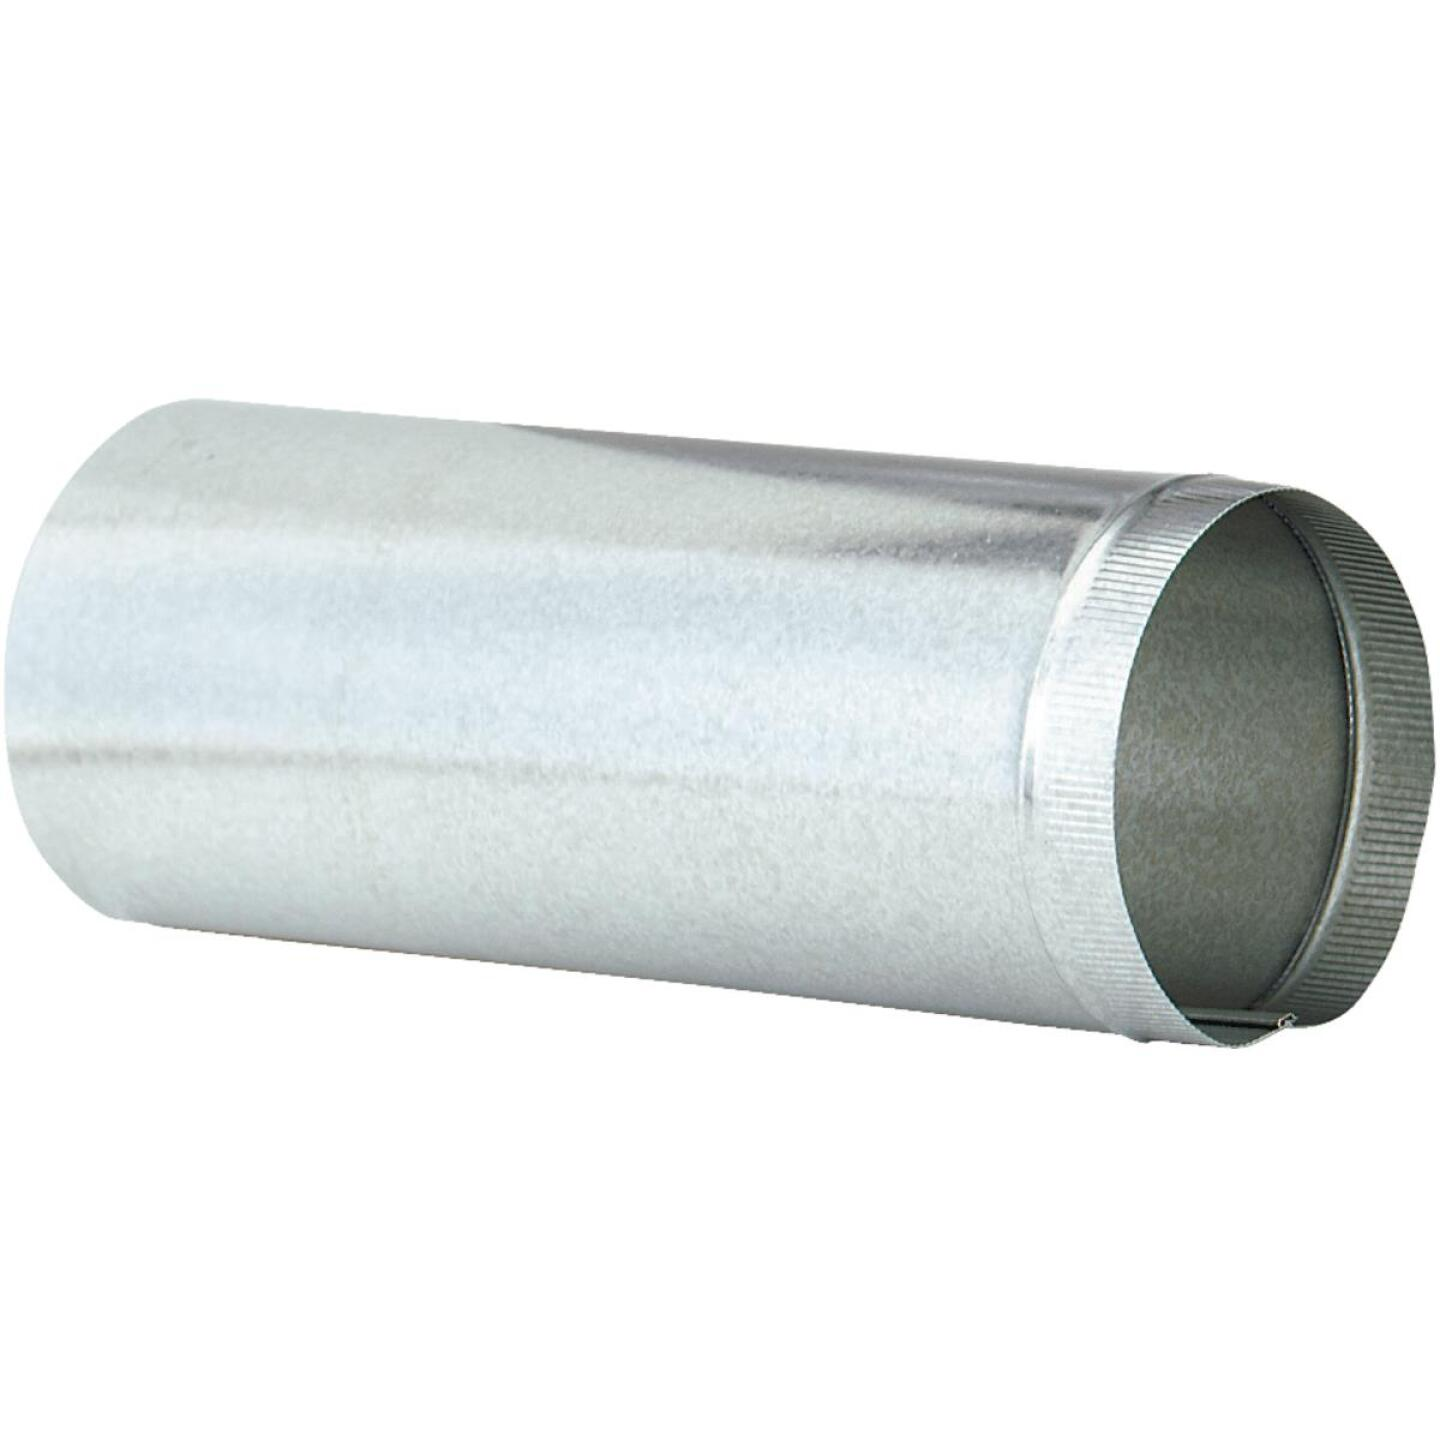 Imperial 24 Ga. 10 In. x 24 In. Galvanized Furnace Pipe Image 2